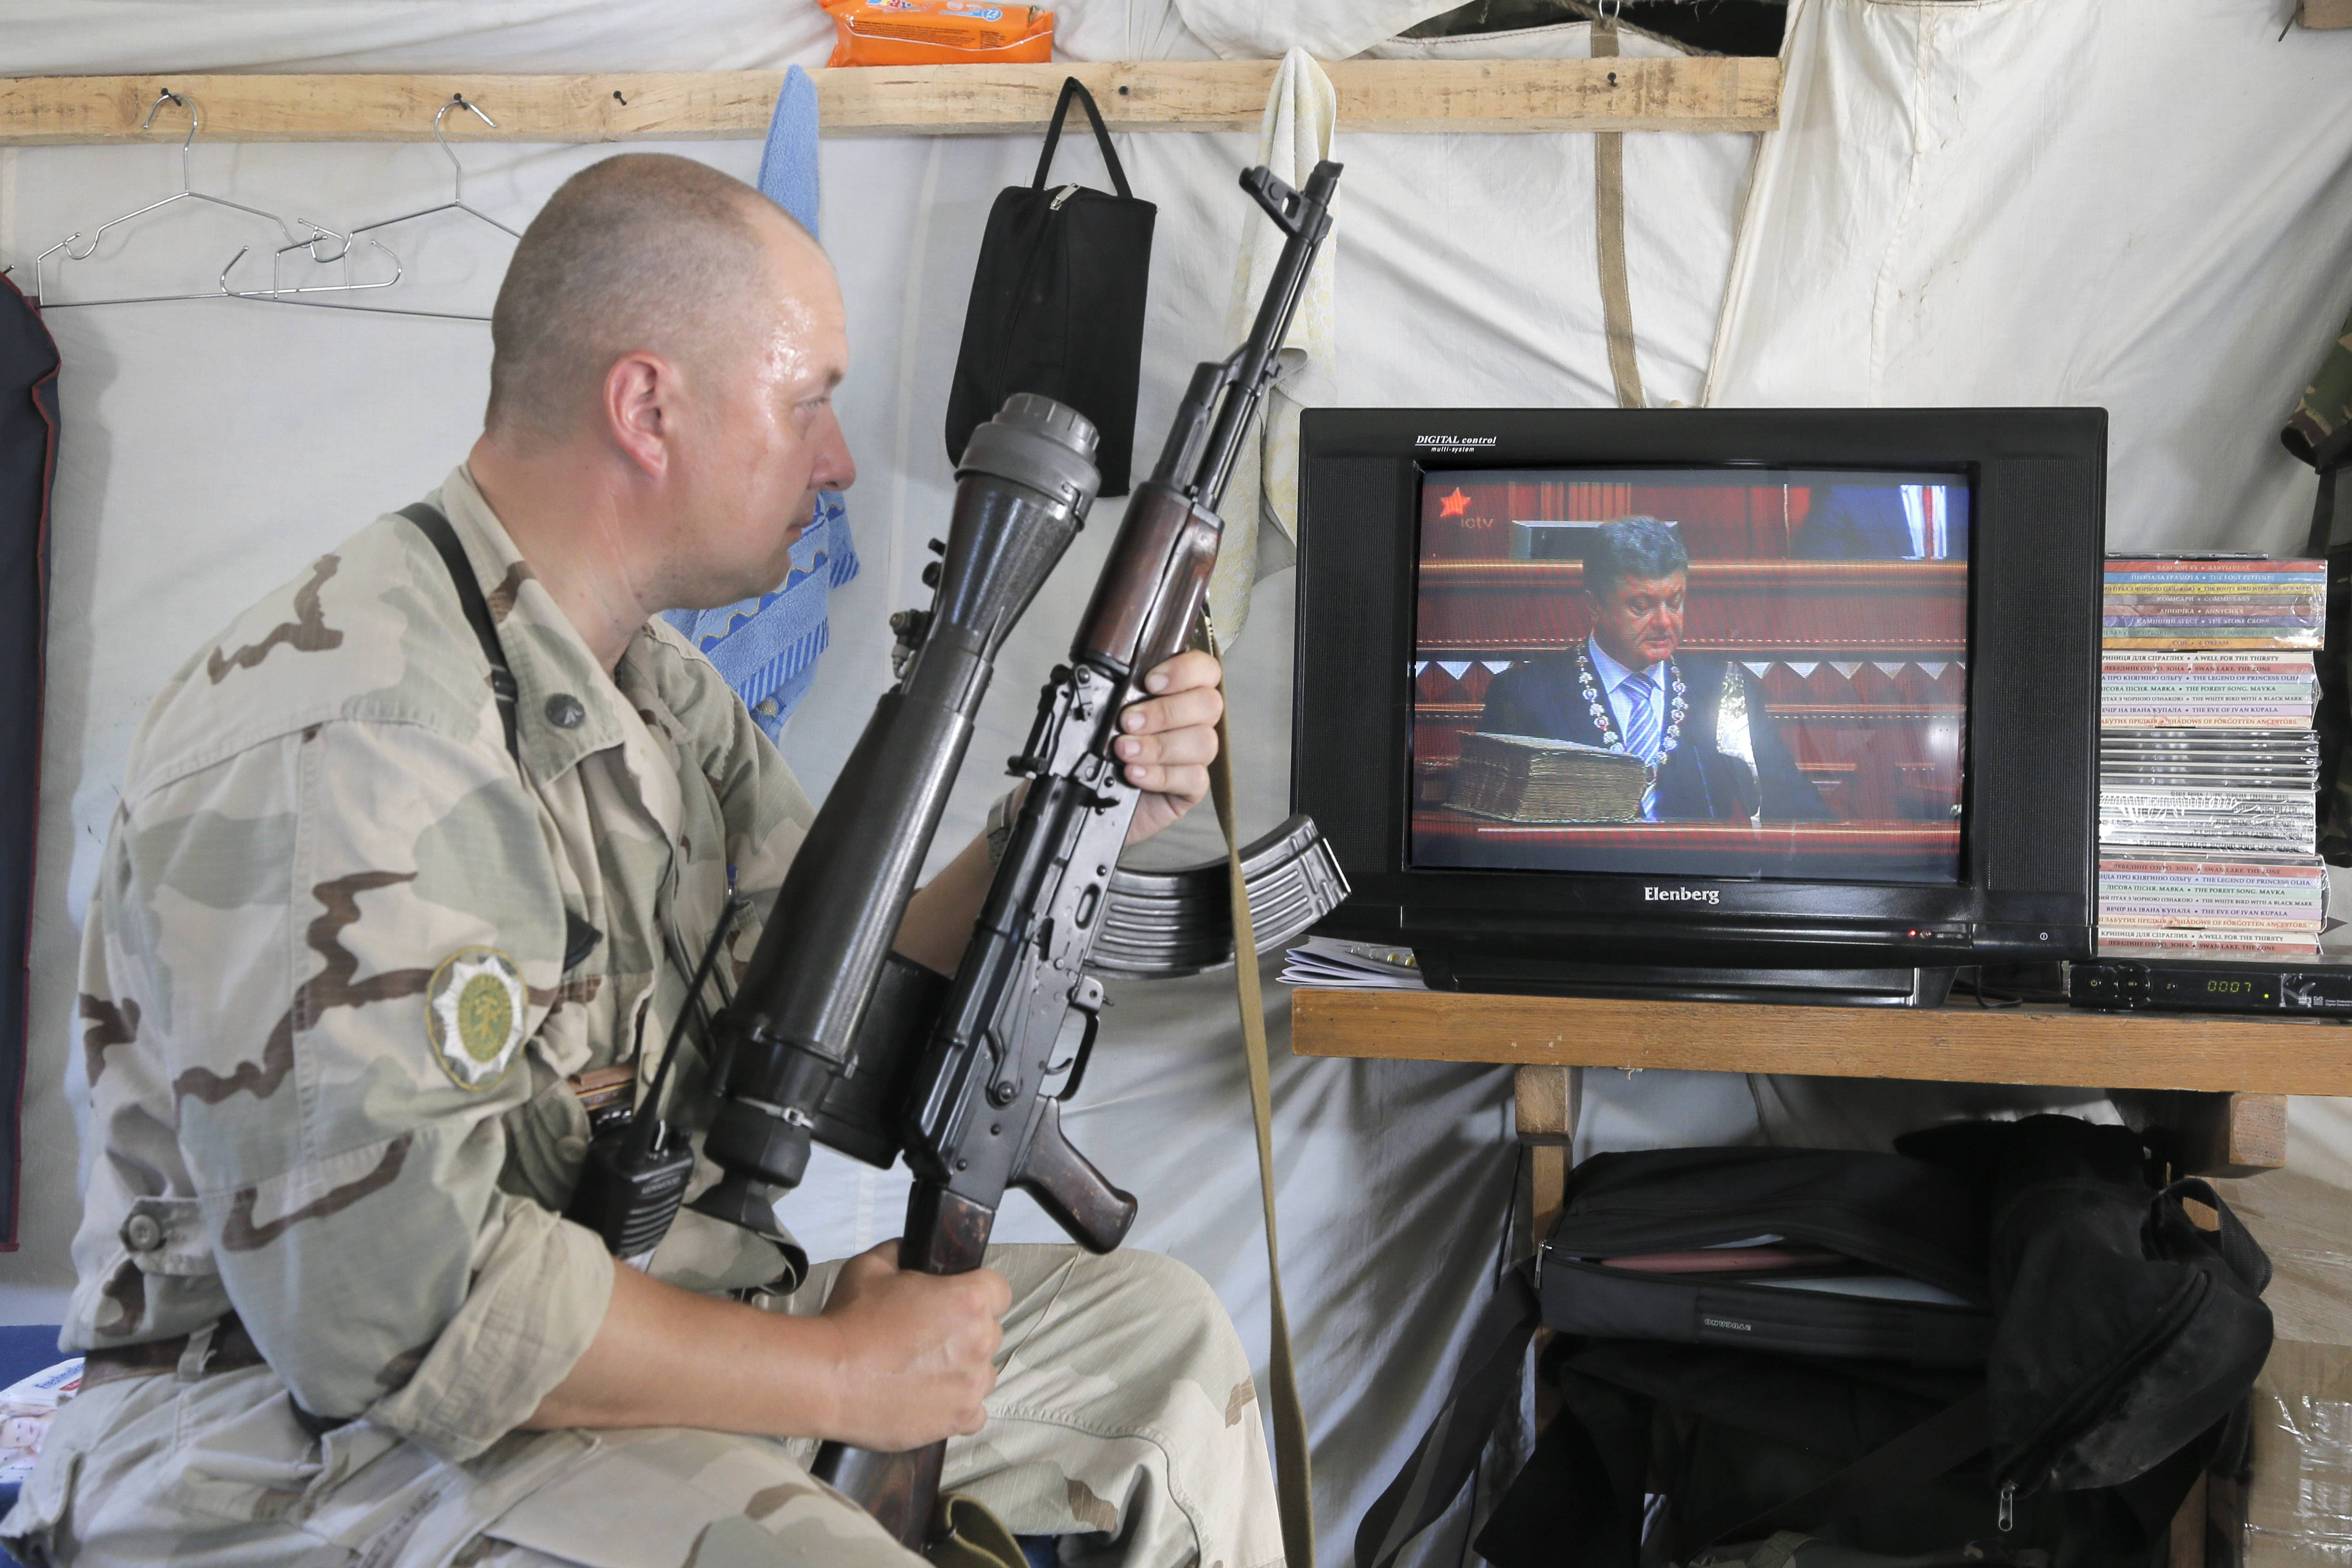 A Ukrainian soldier watches the inauguration ceremony Saturday of Ukrainian President-elect Petro Poroshenko on TV in a tent at the Ukraine's Army position close to Slovyansk, Ukraine.